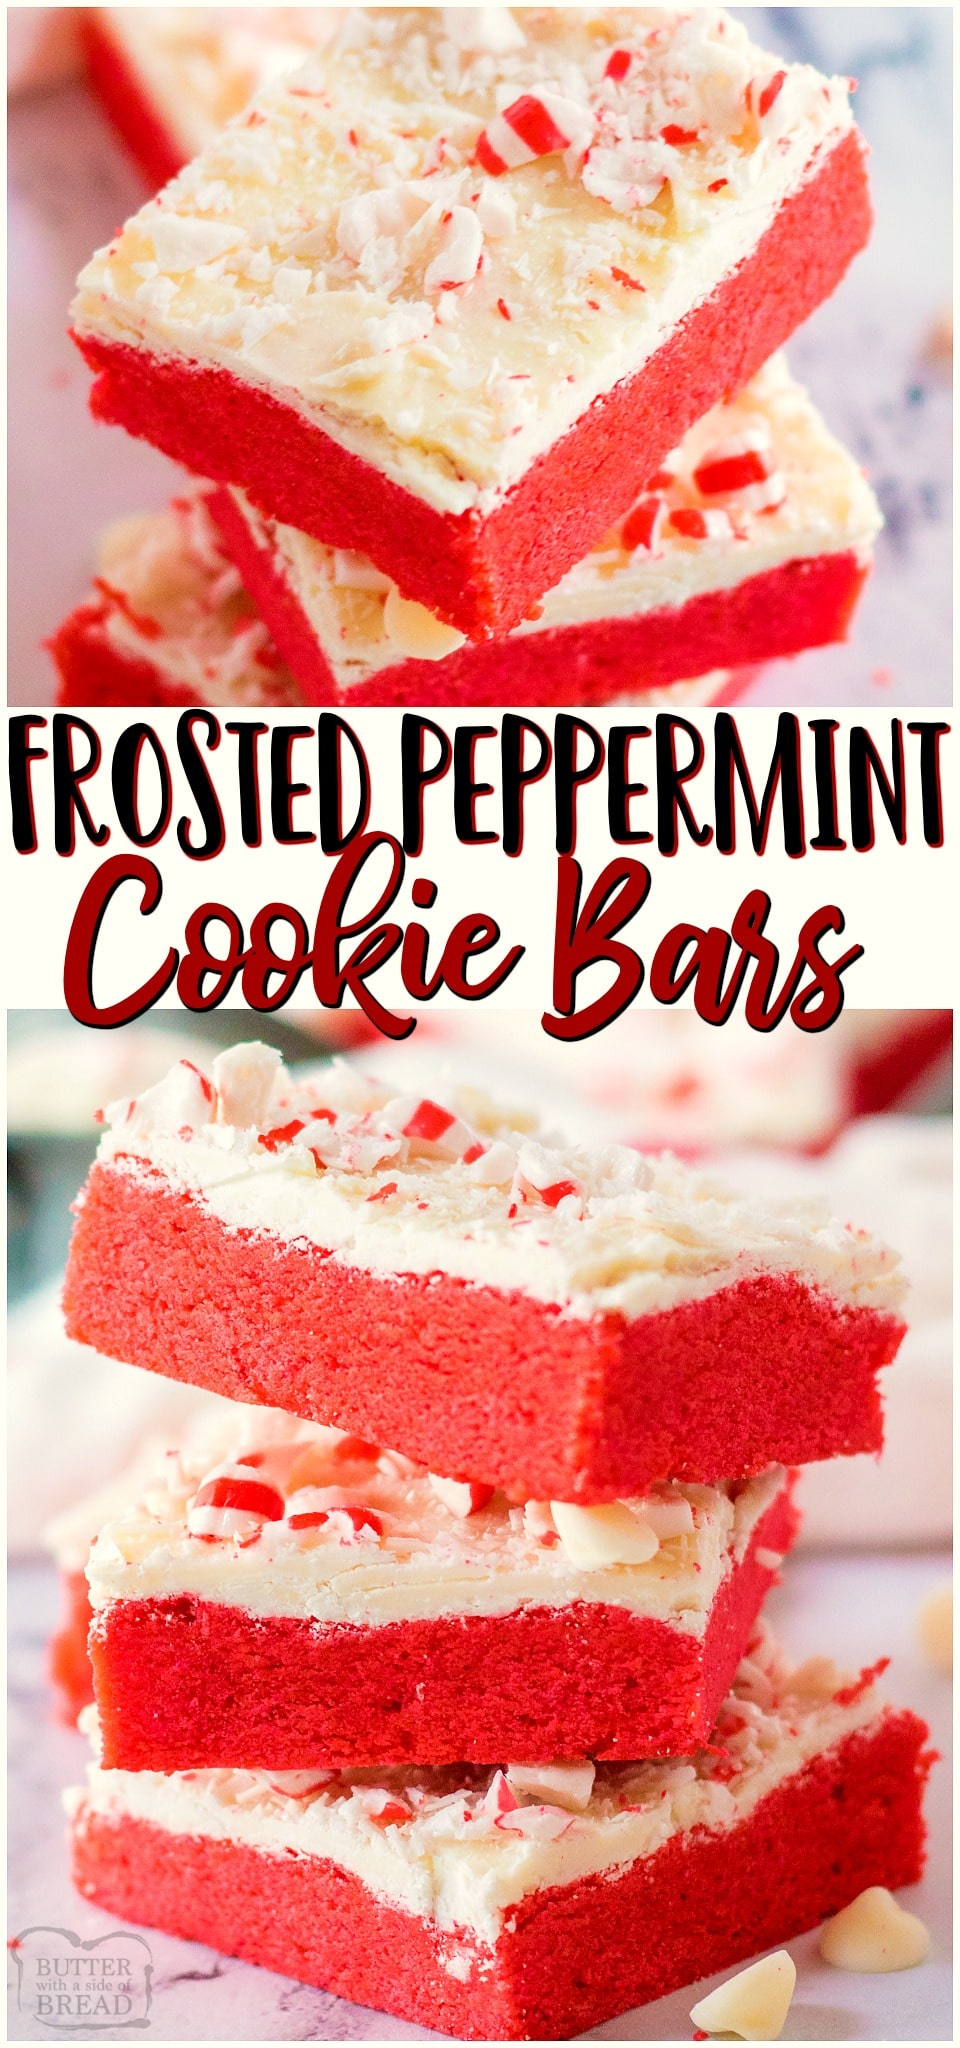 Frosted Peppermint Cookie Barsare festive holiday sugar cookies baked into bars & topped with sweet white chocolate & peppermints! Easy cookie bar recipe with lovely peppermint flavor perfect for Christmas baking.#cookies #bars #peppermint #whitechocolate #baking #holidays #easyrecipe from FAMILY COOKIE RECIPES via @familycookierecipes